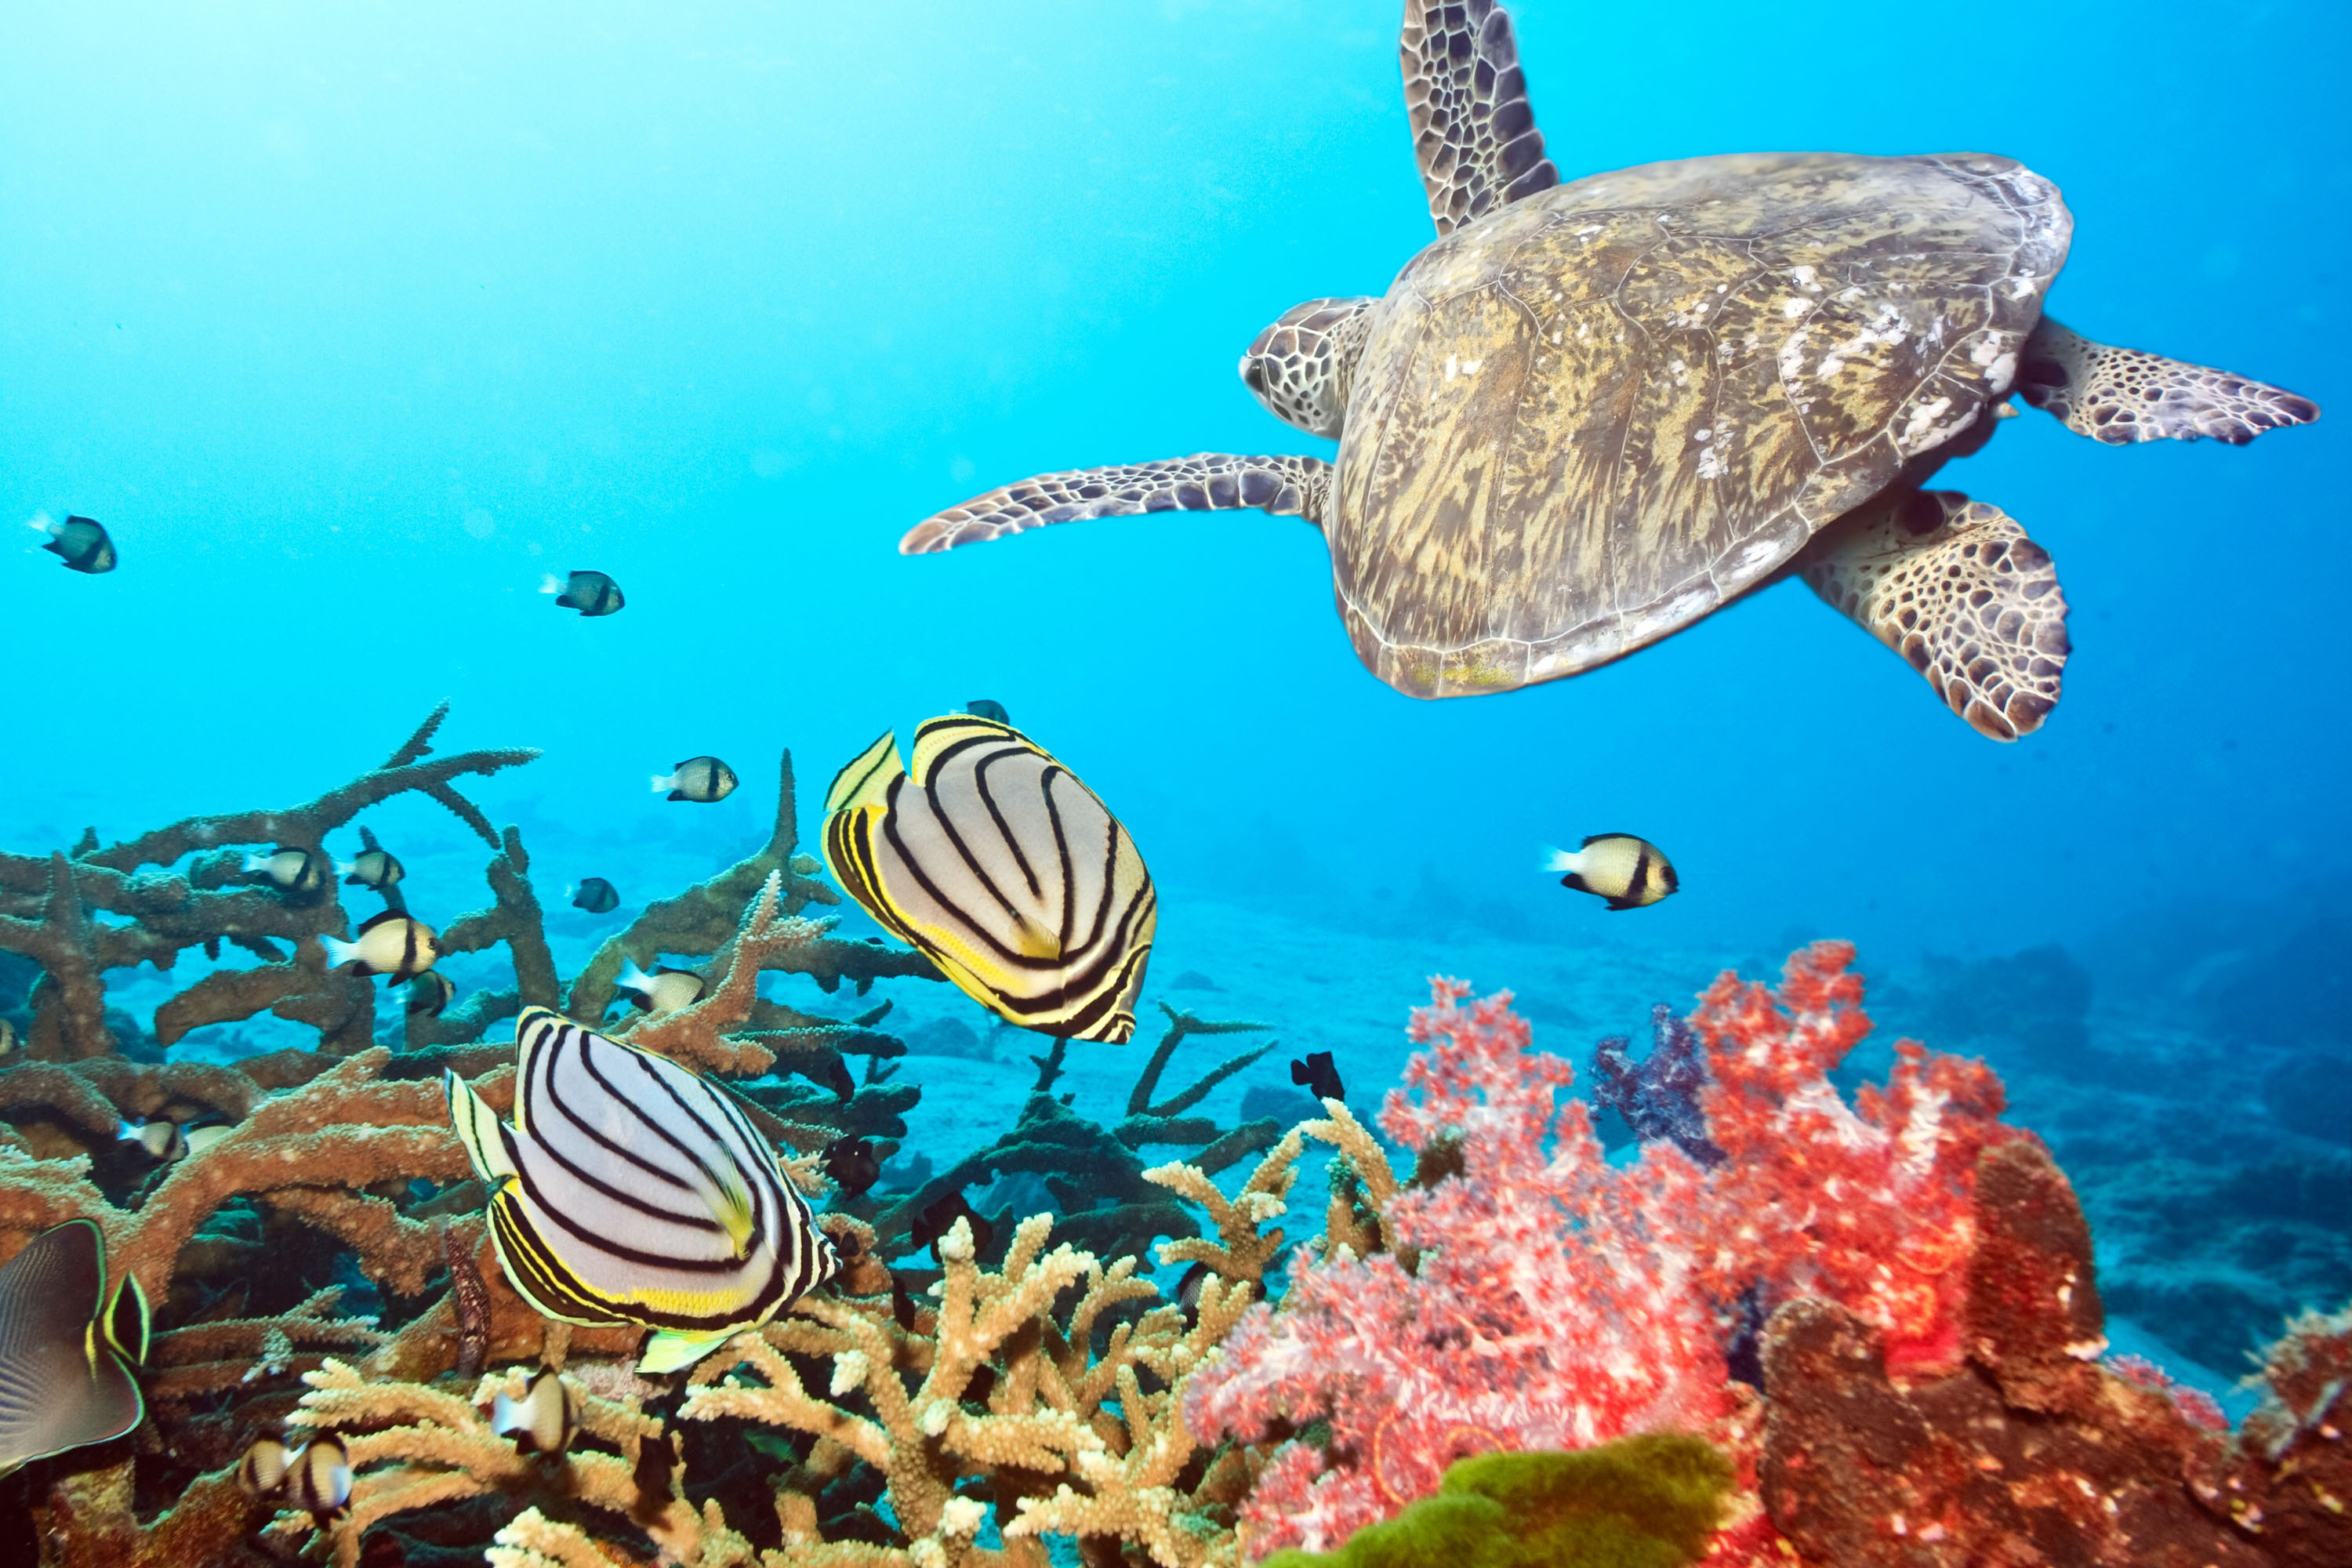 49300 download wallpaper Landscape, Turtles, Sea, Fishes screensavers and pictures for free